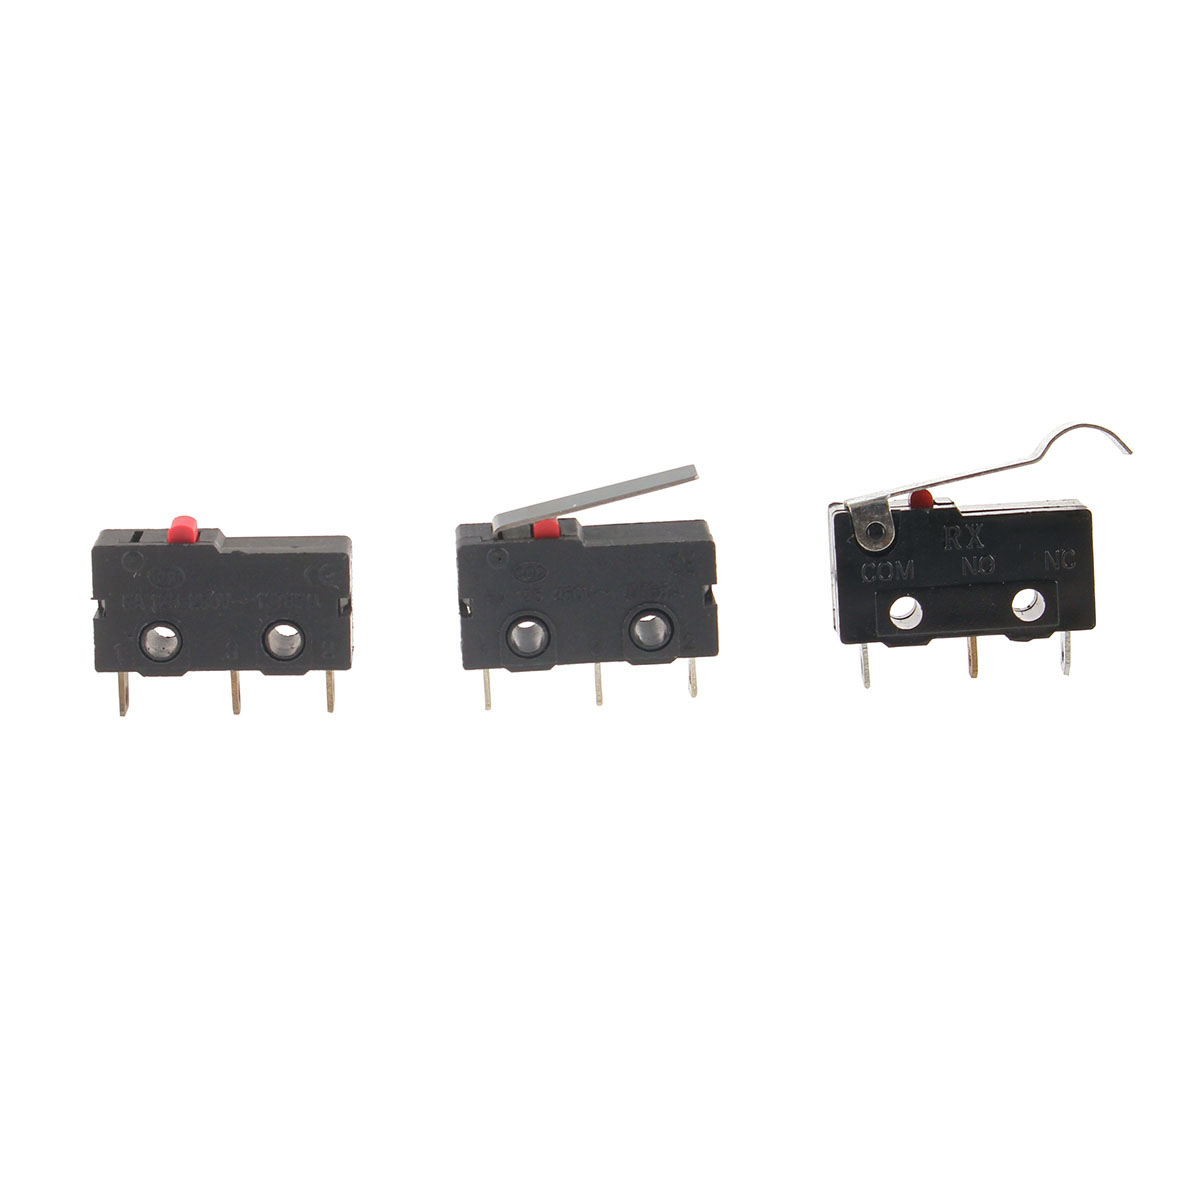 SPDT KW12 Straight Hinge Lever Control Mini Micro Switch KW11-1Z-00 KW11-1Z-0101 Momentary Lever Actuator Miniature Micro Switch